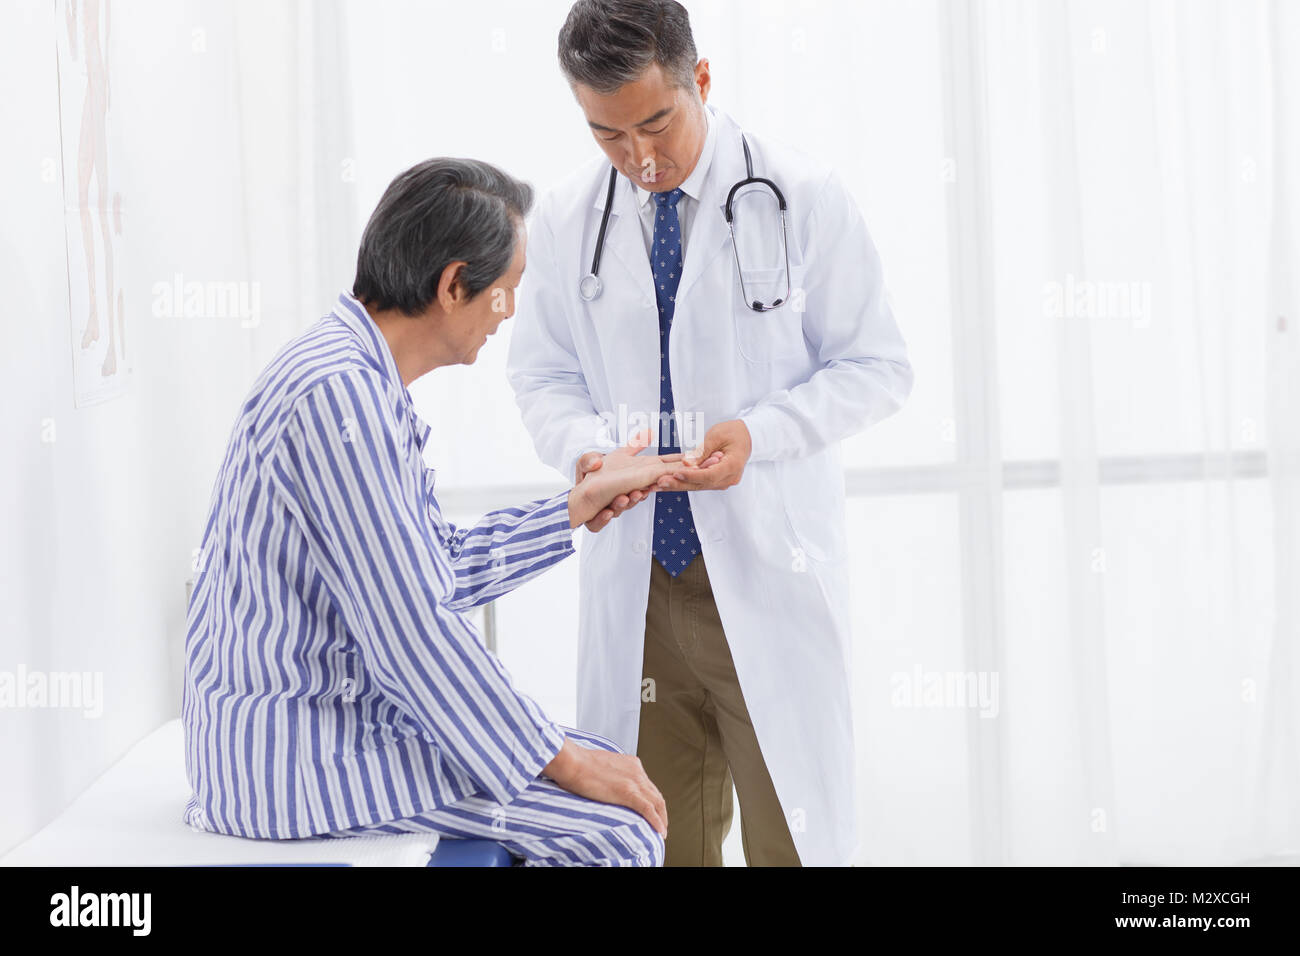 The doctor examined the patients - Stock Image